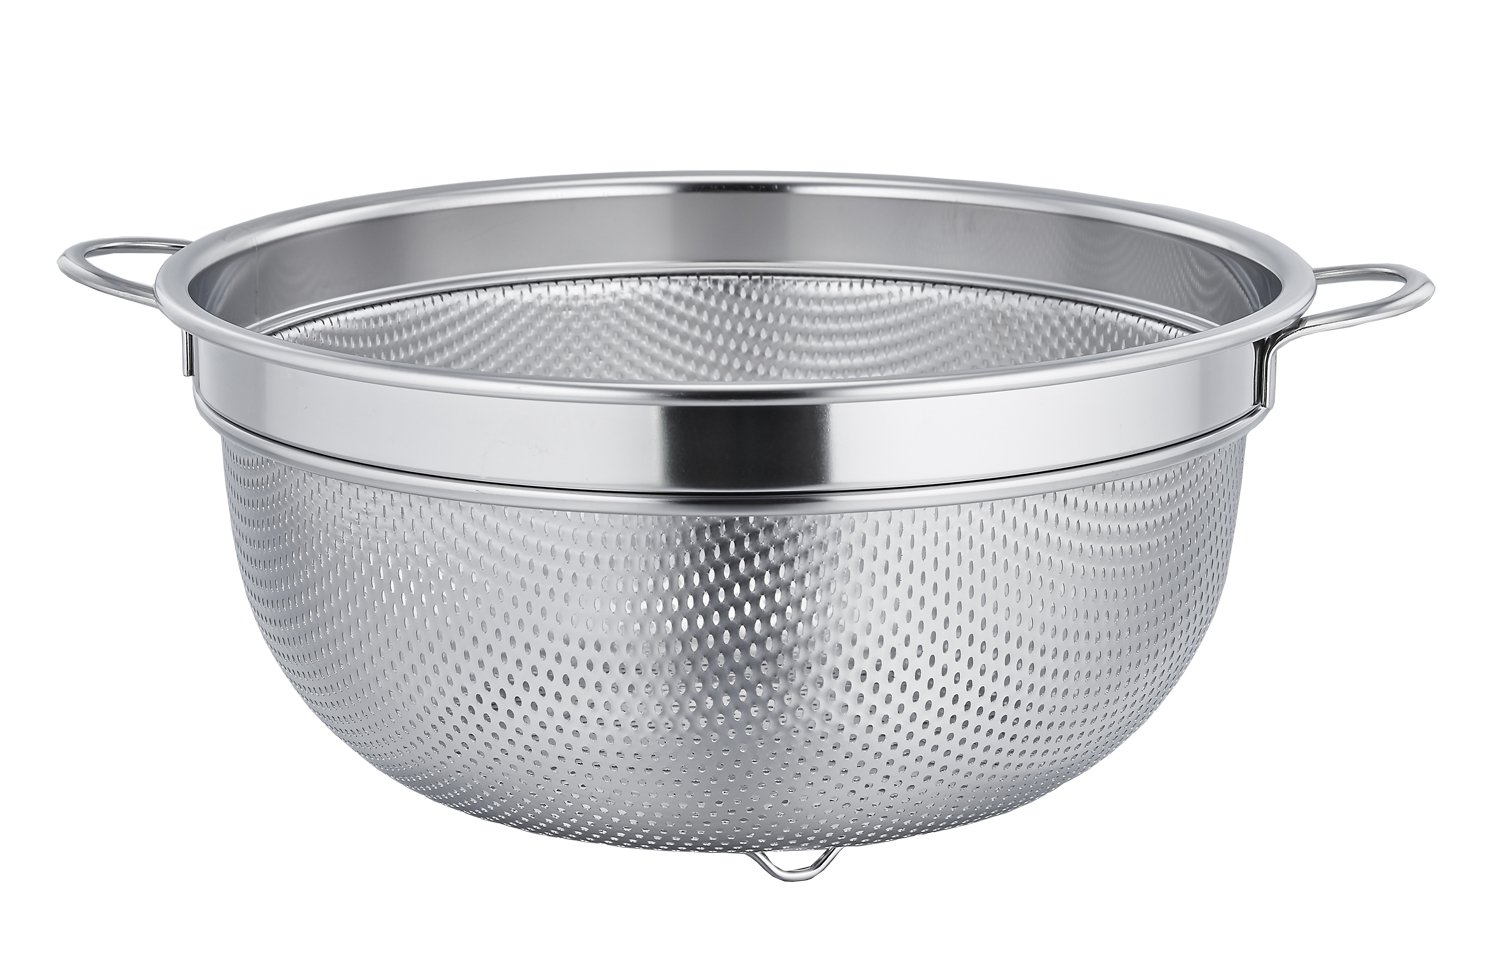 TeamFar Stainless Steel Micro-perforated Compact Size Colander Food Strainer, Solid Handles, Elevation Base & Mini Holes, Dishwasher Safe